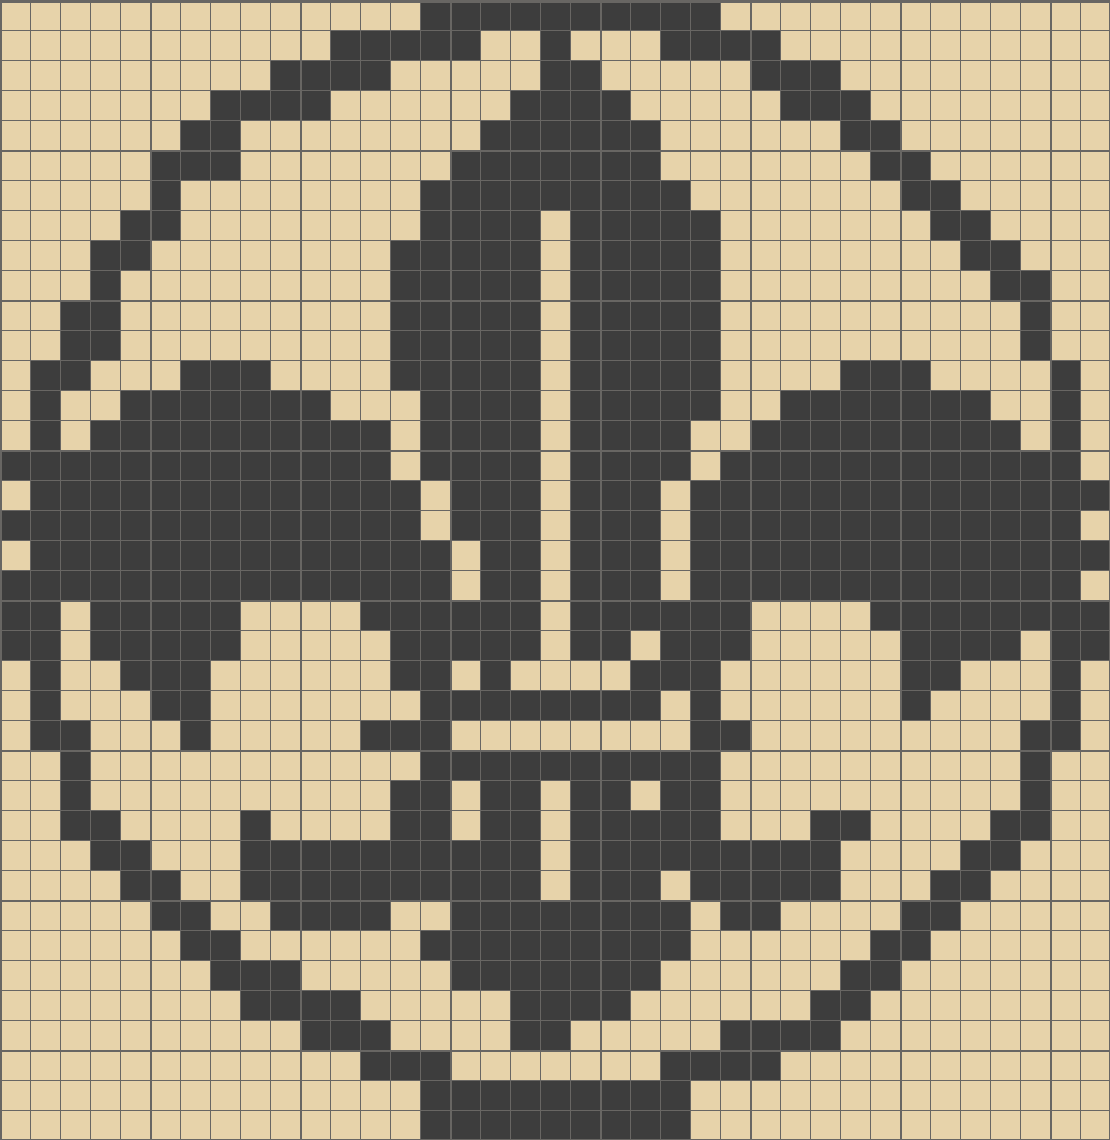 Fleur De Lis Pixel Art Cross Stitch Stitch Crochet